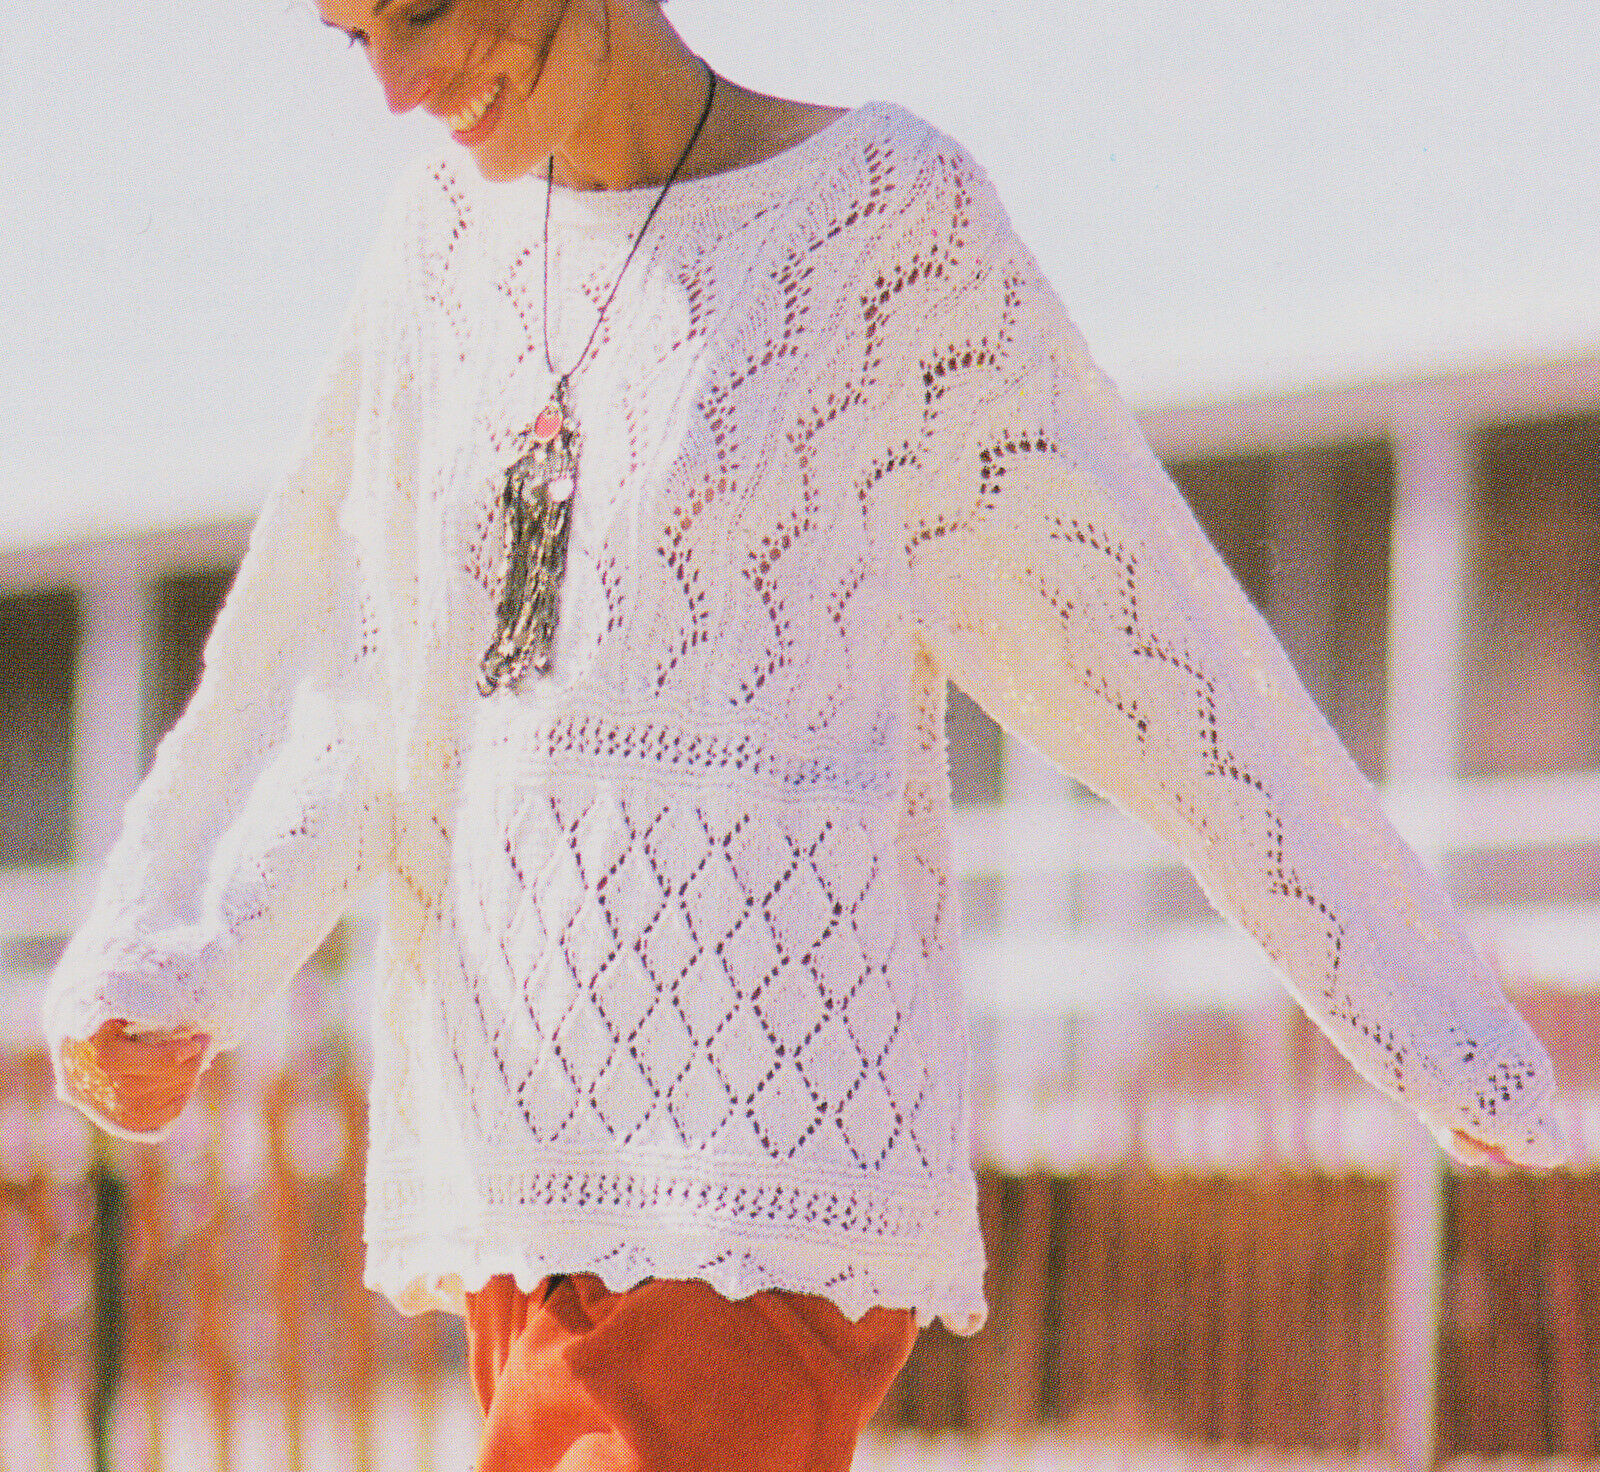 Lace Sampler Summer Sweater Knitting Pattern